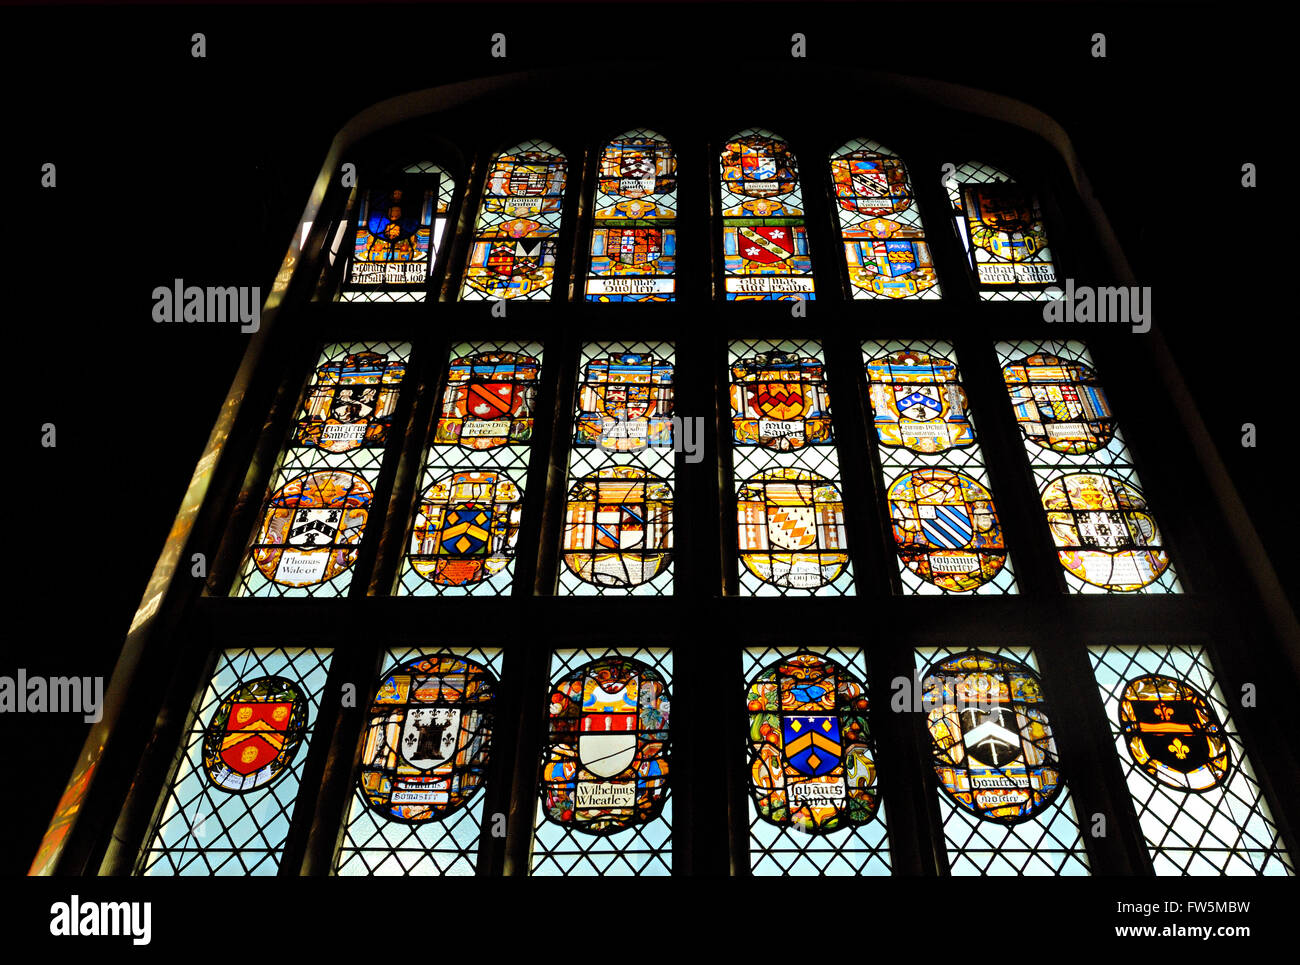 the great window of Middle Temple Hall, London Inns of Court, dated 1570, with shields of nobility including Thomas - Stock Image